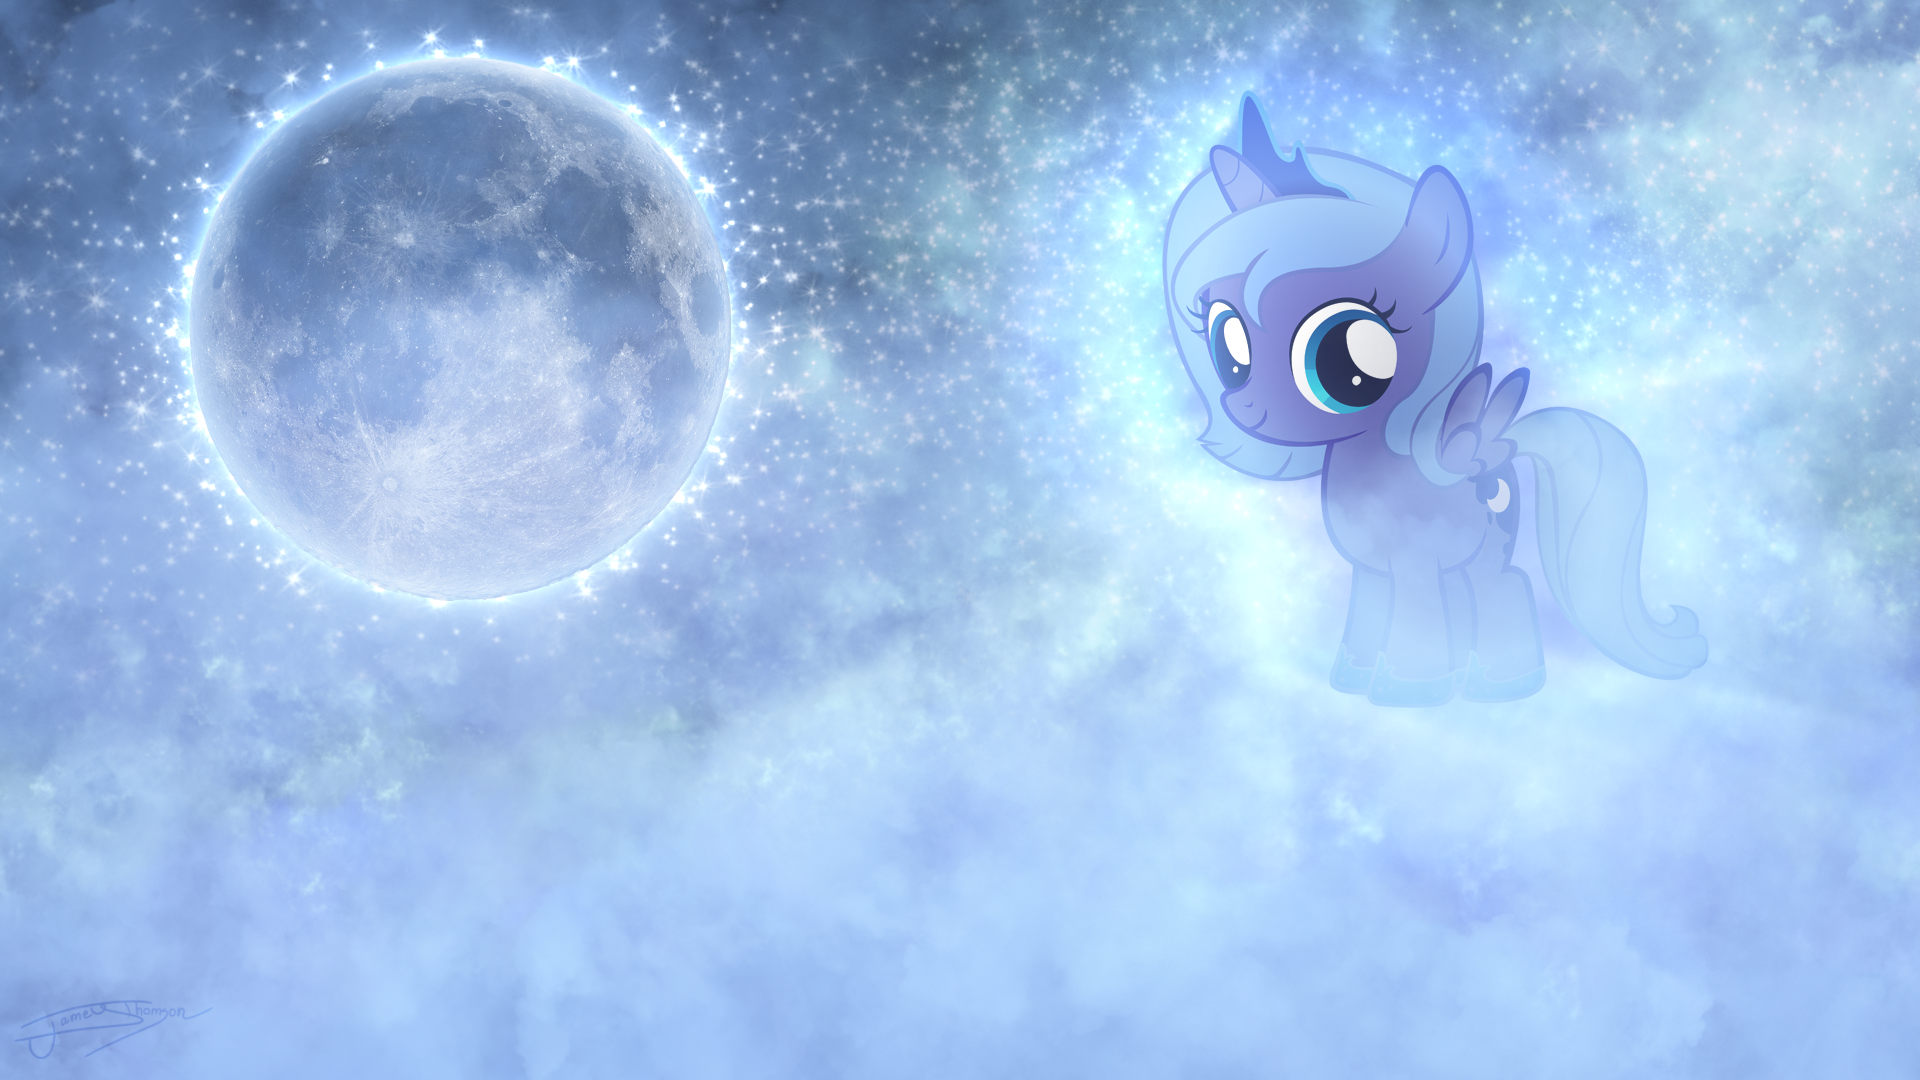 Filly Luna - Shadows of the Moonlight by Jamey4